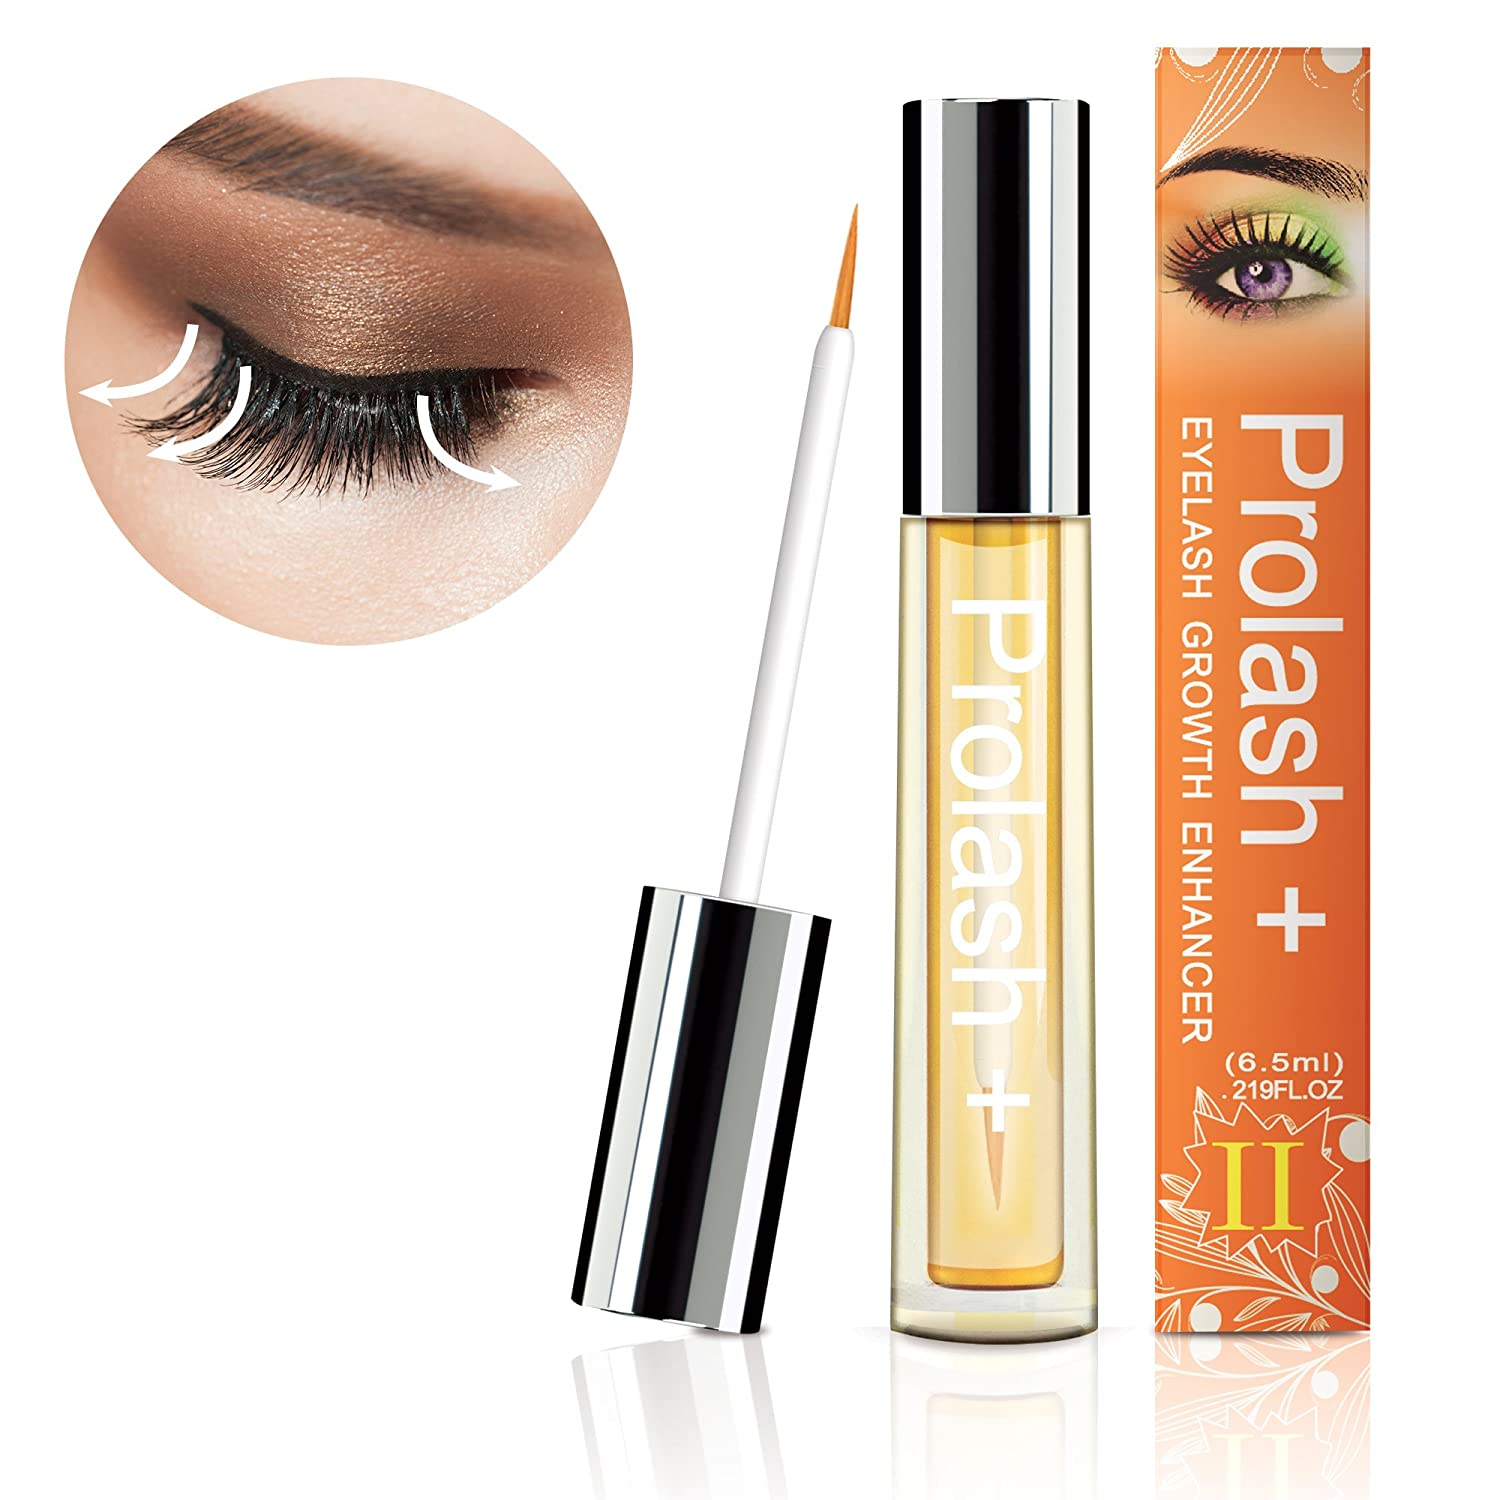 Essy Beauty Professional Eyelash Growth Serum for longer and healthier eyelashes eyebrow serum(6.5 ML) (6.5 ml) AsaVea